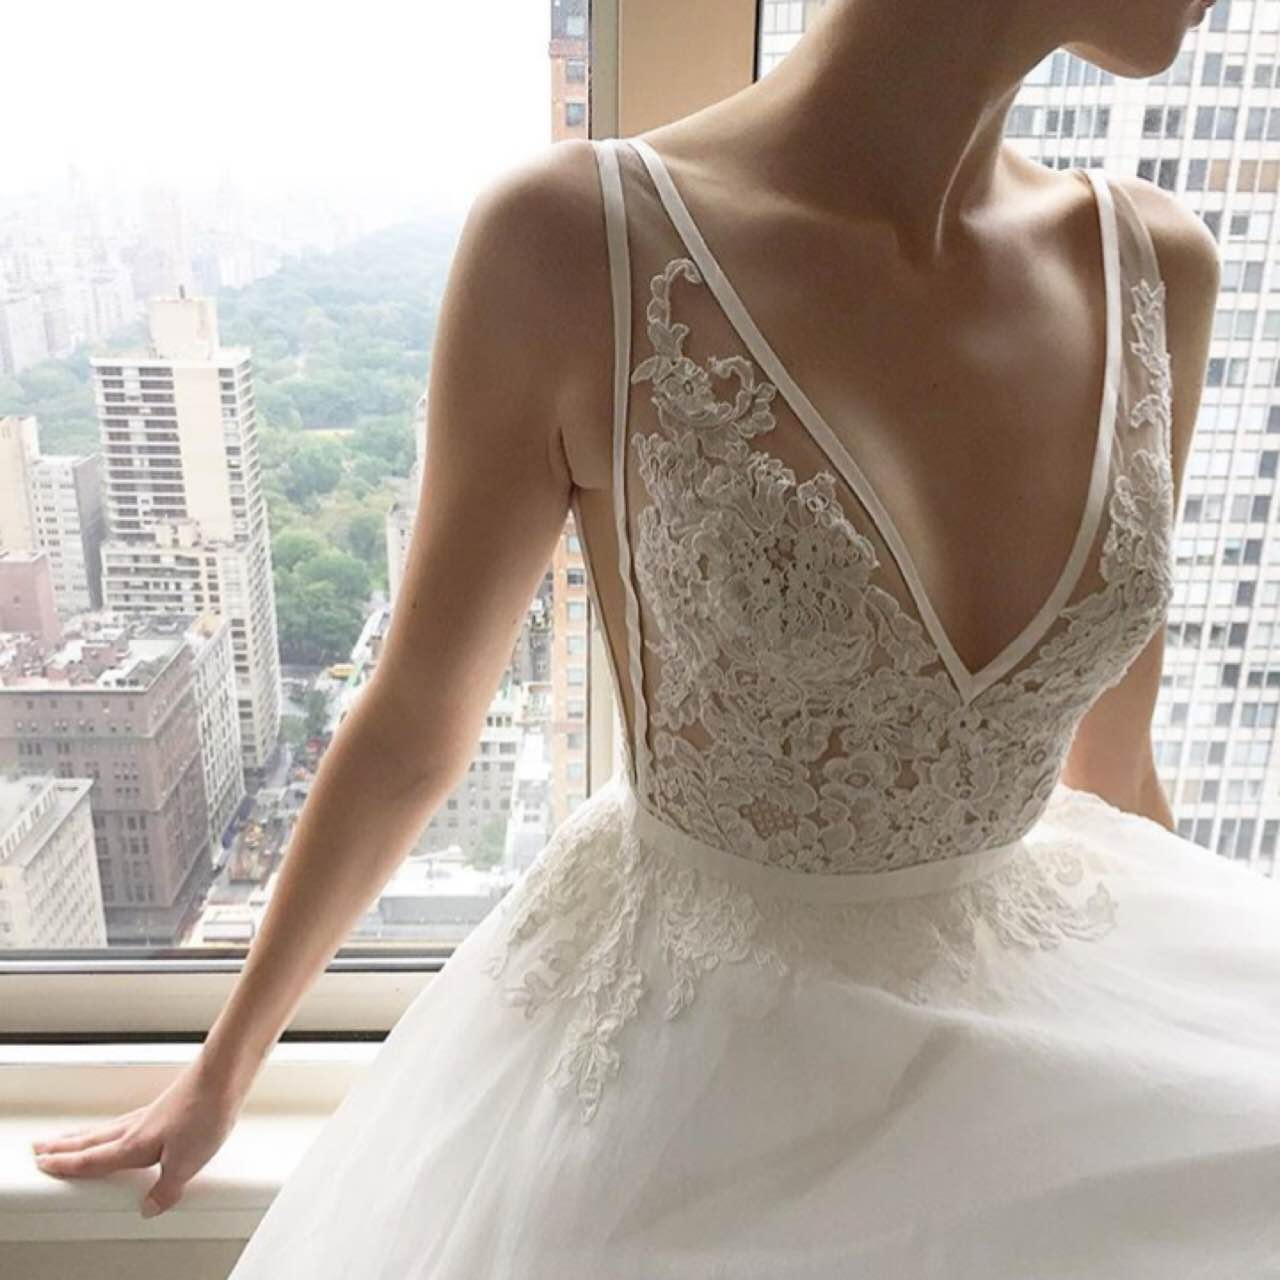 new-york-bridal-fashion-week-gelinlik-modelleri-anna-barge